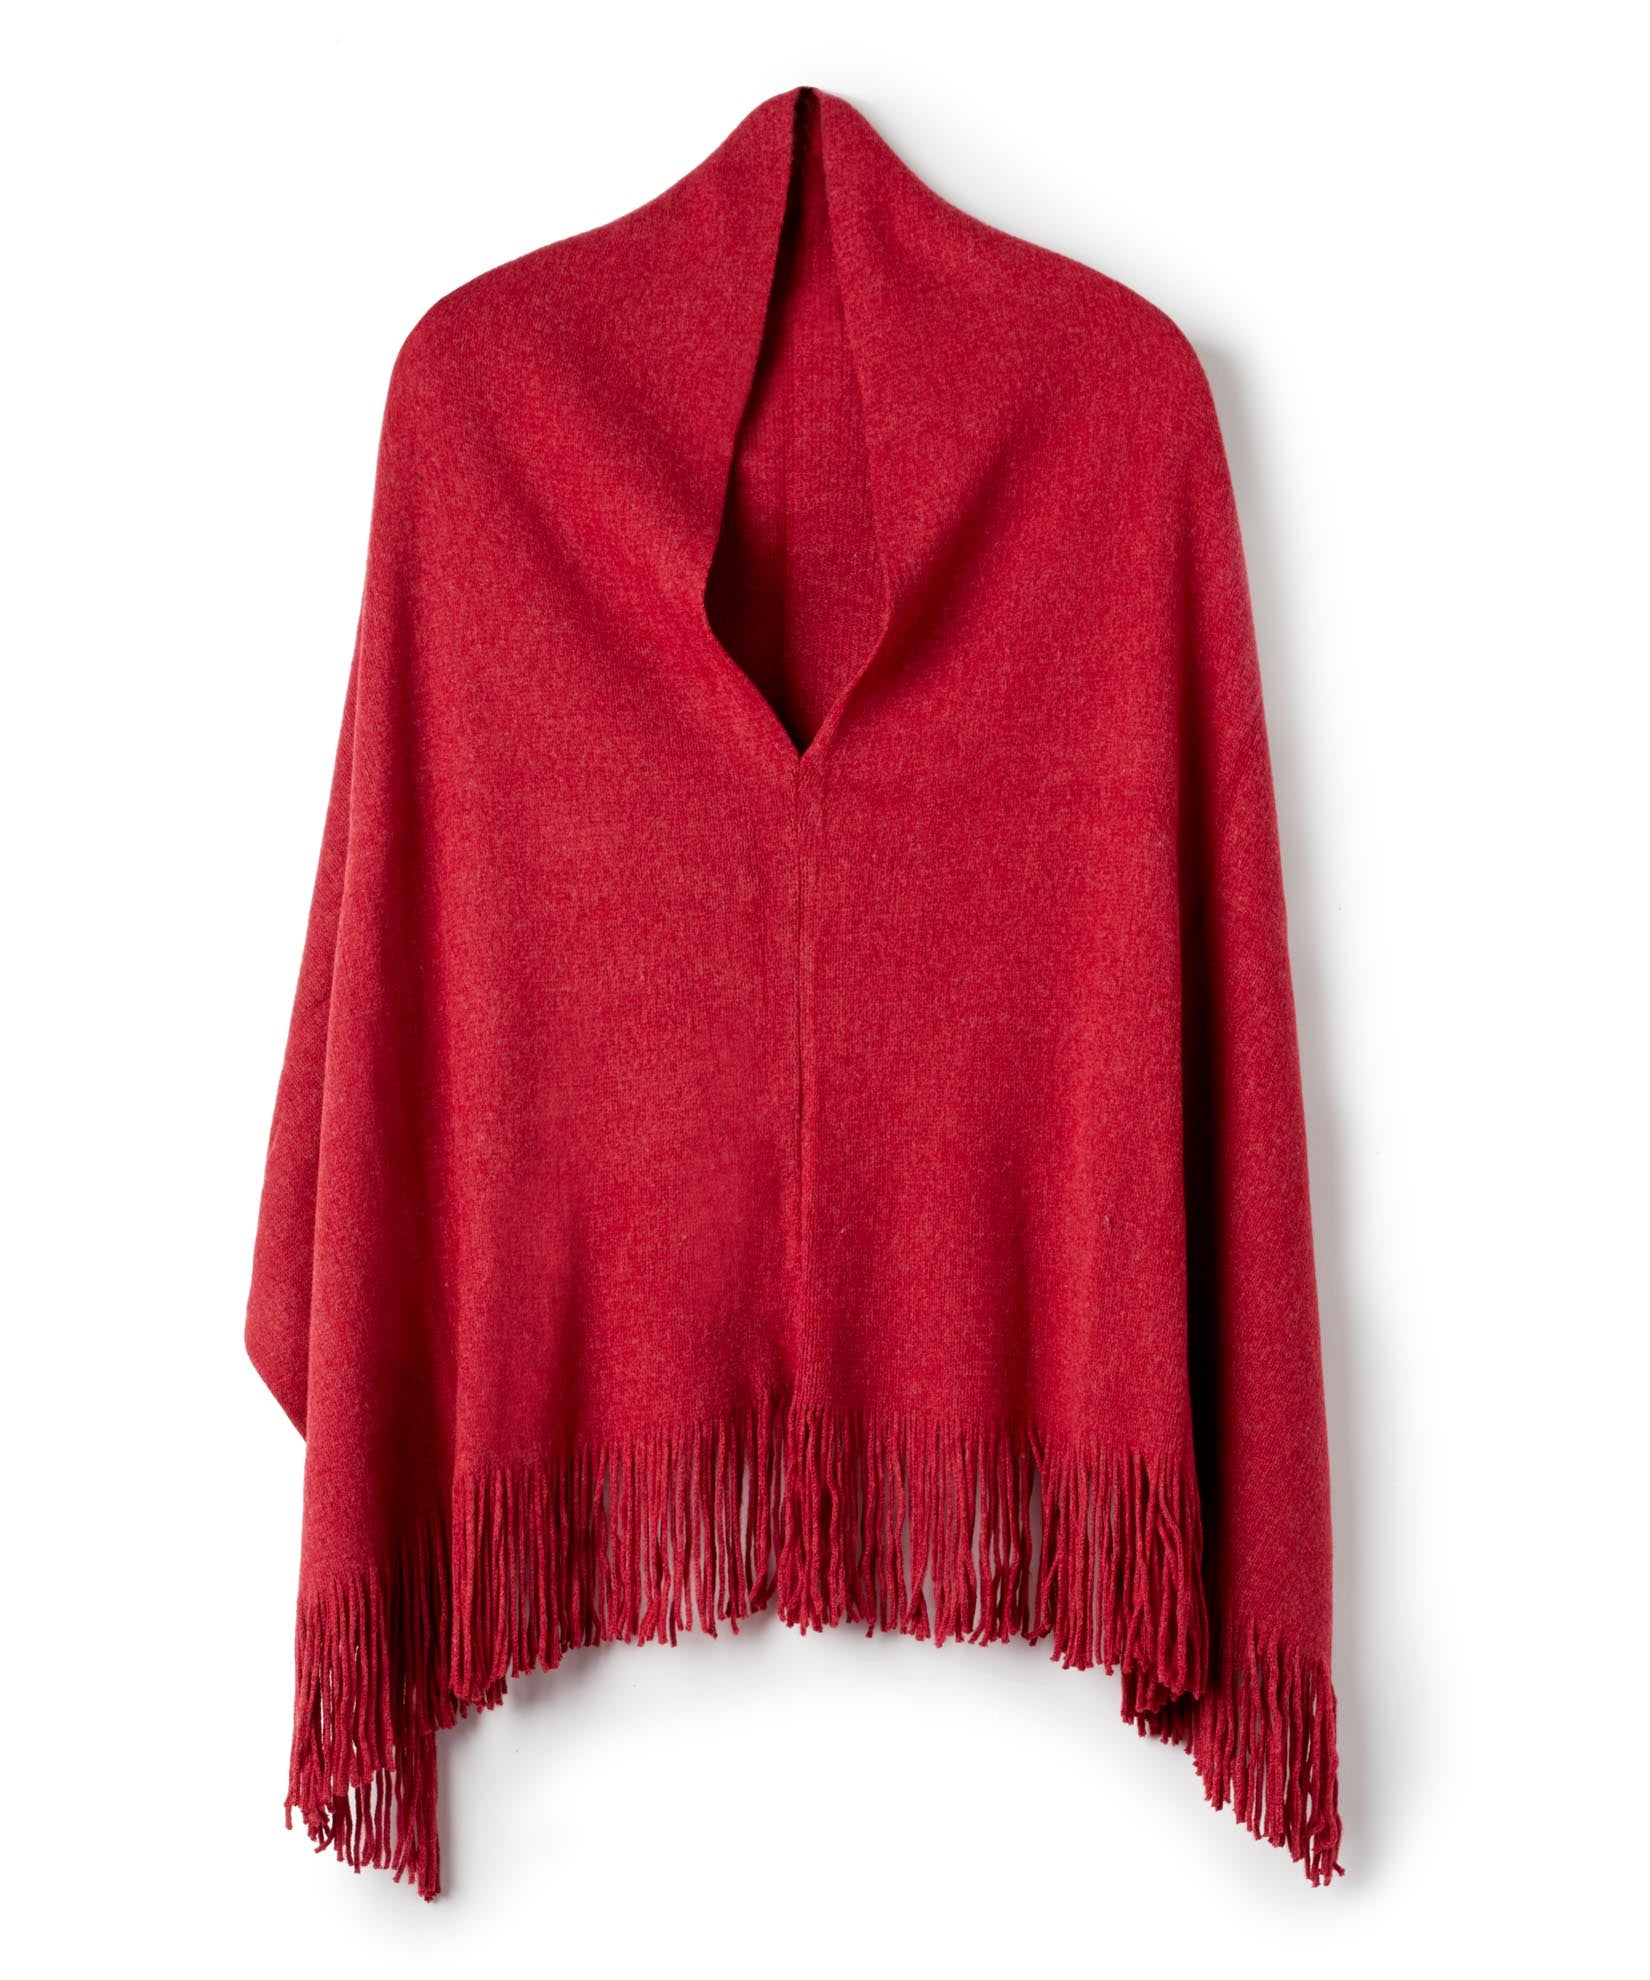 Currant - M Soft Poncho